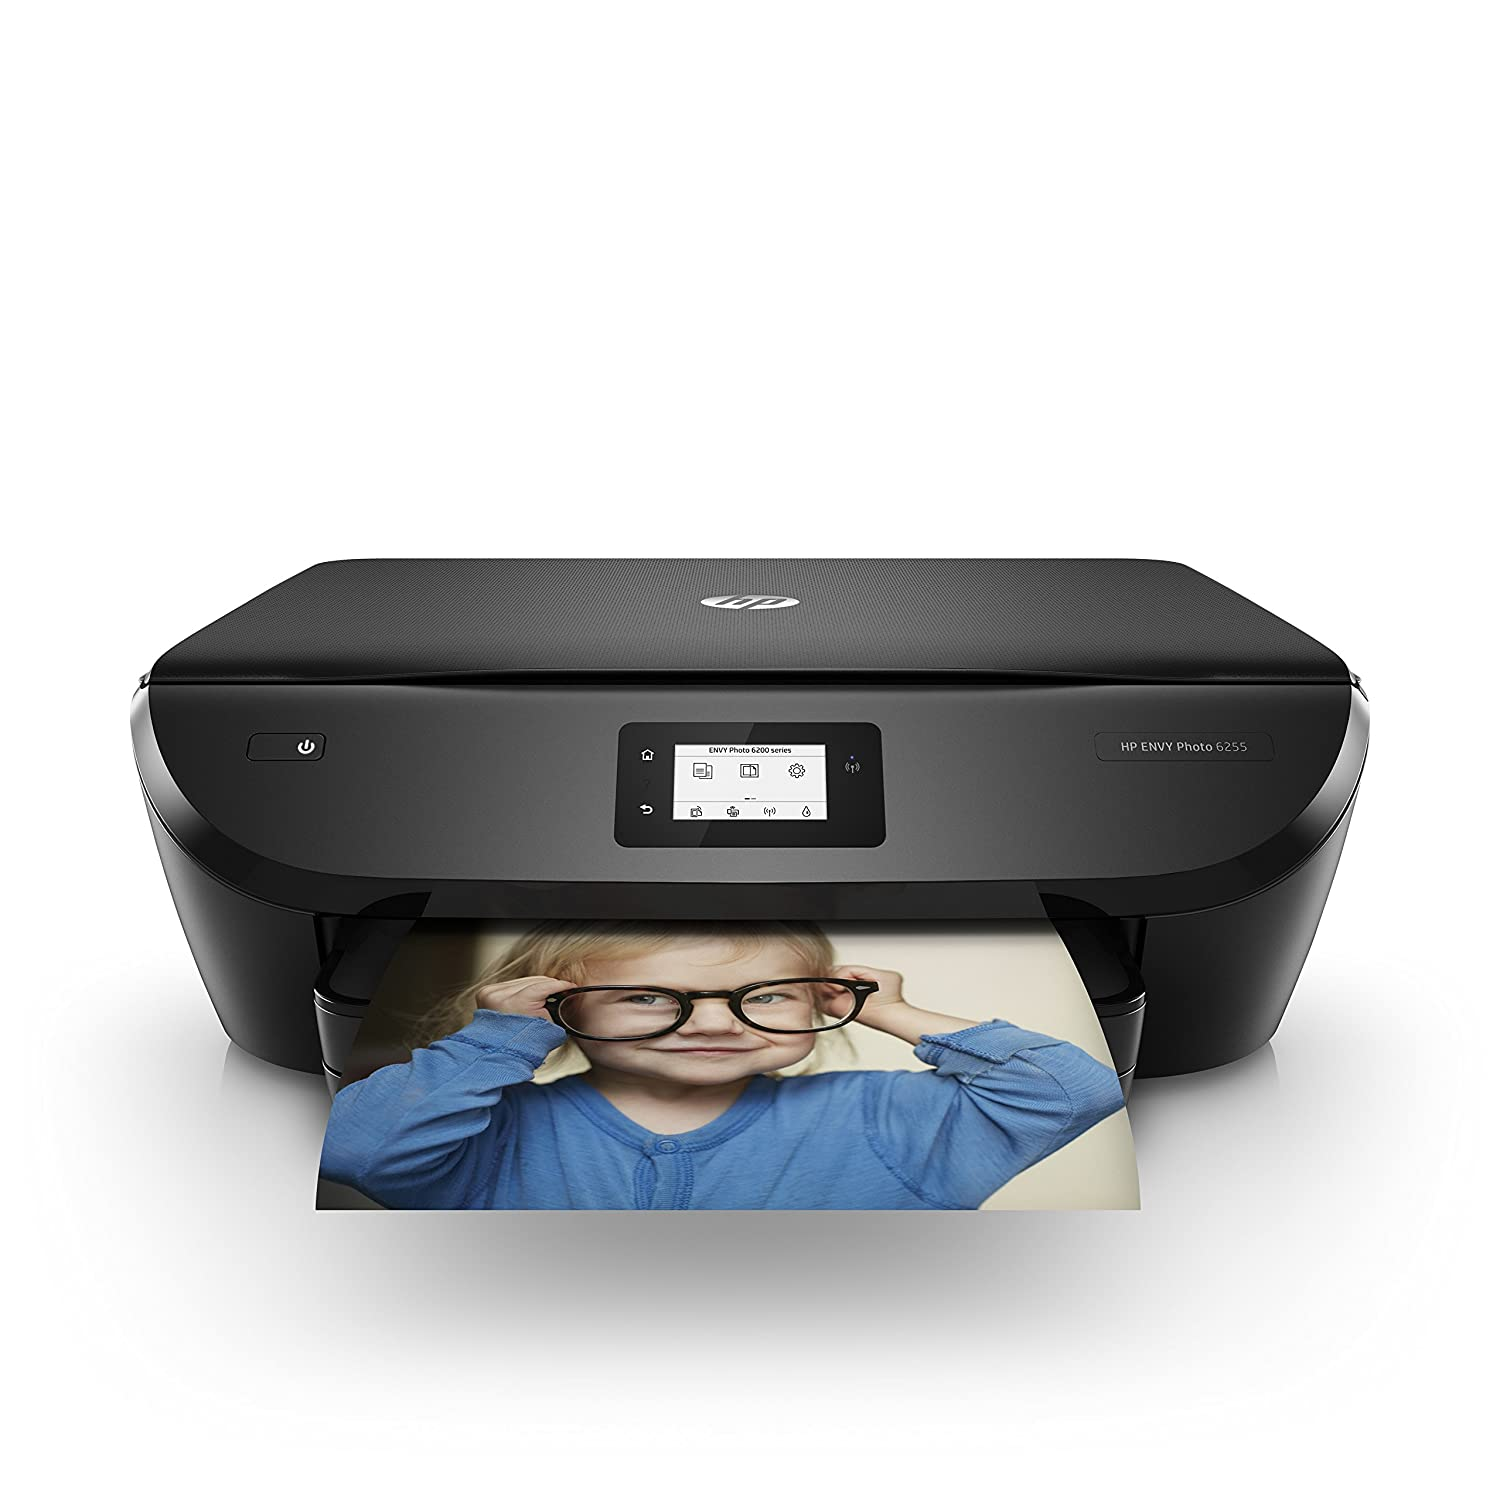 Amazoncom Hp Envy Photo 6255 All In One Photo Printer With